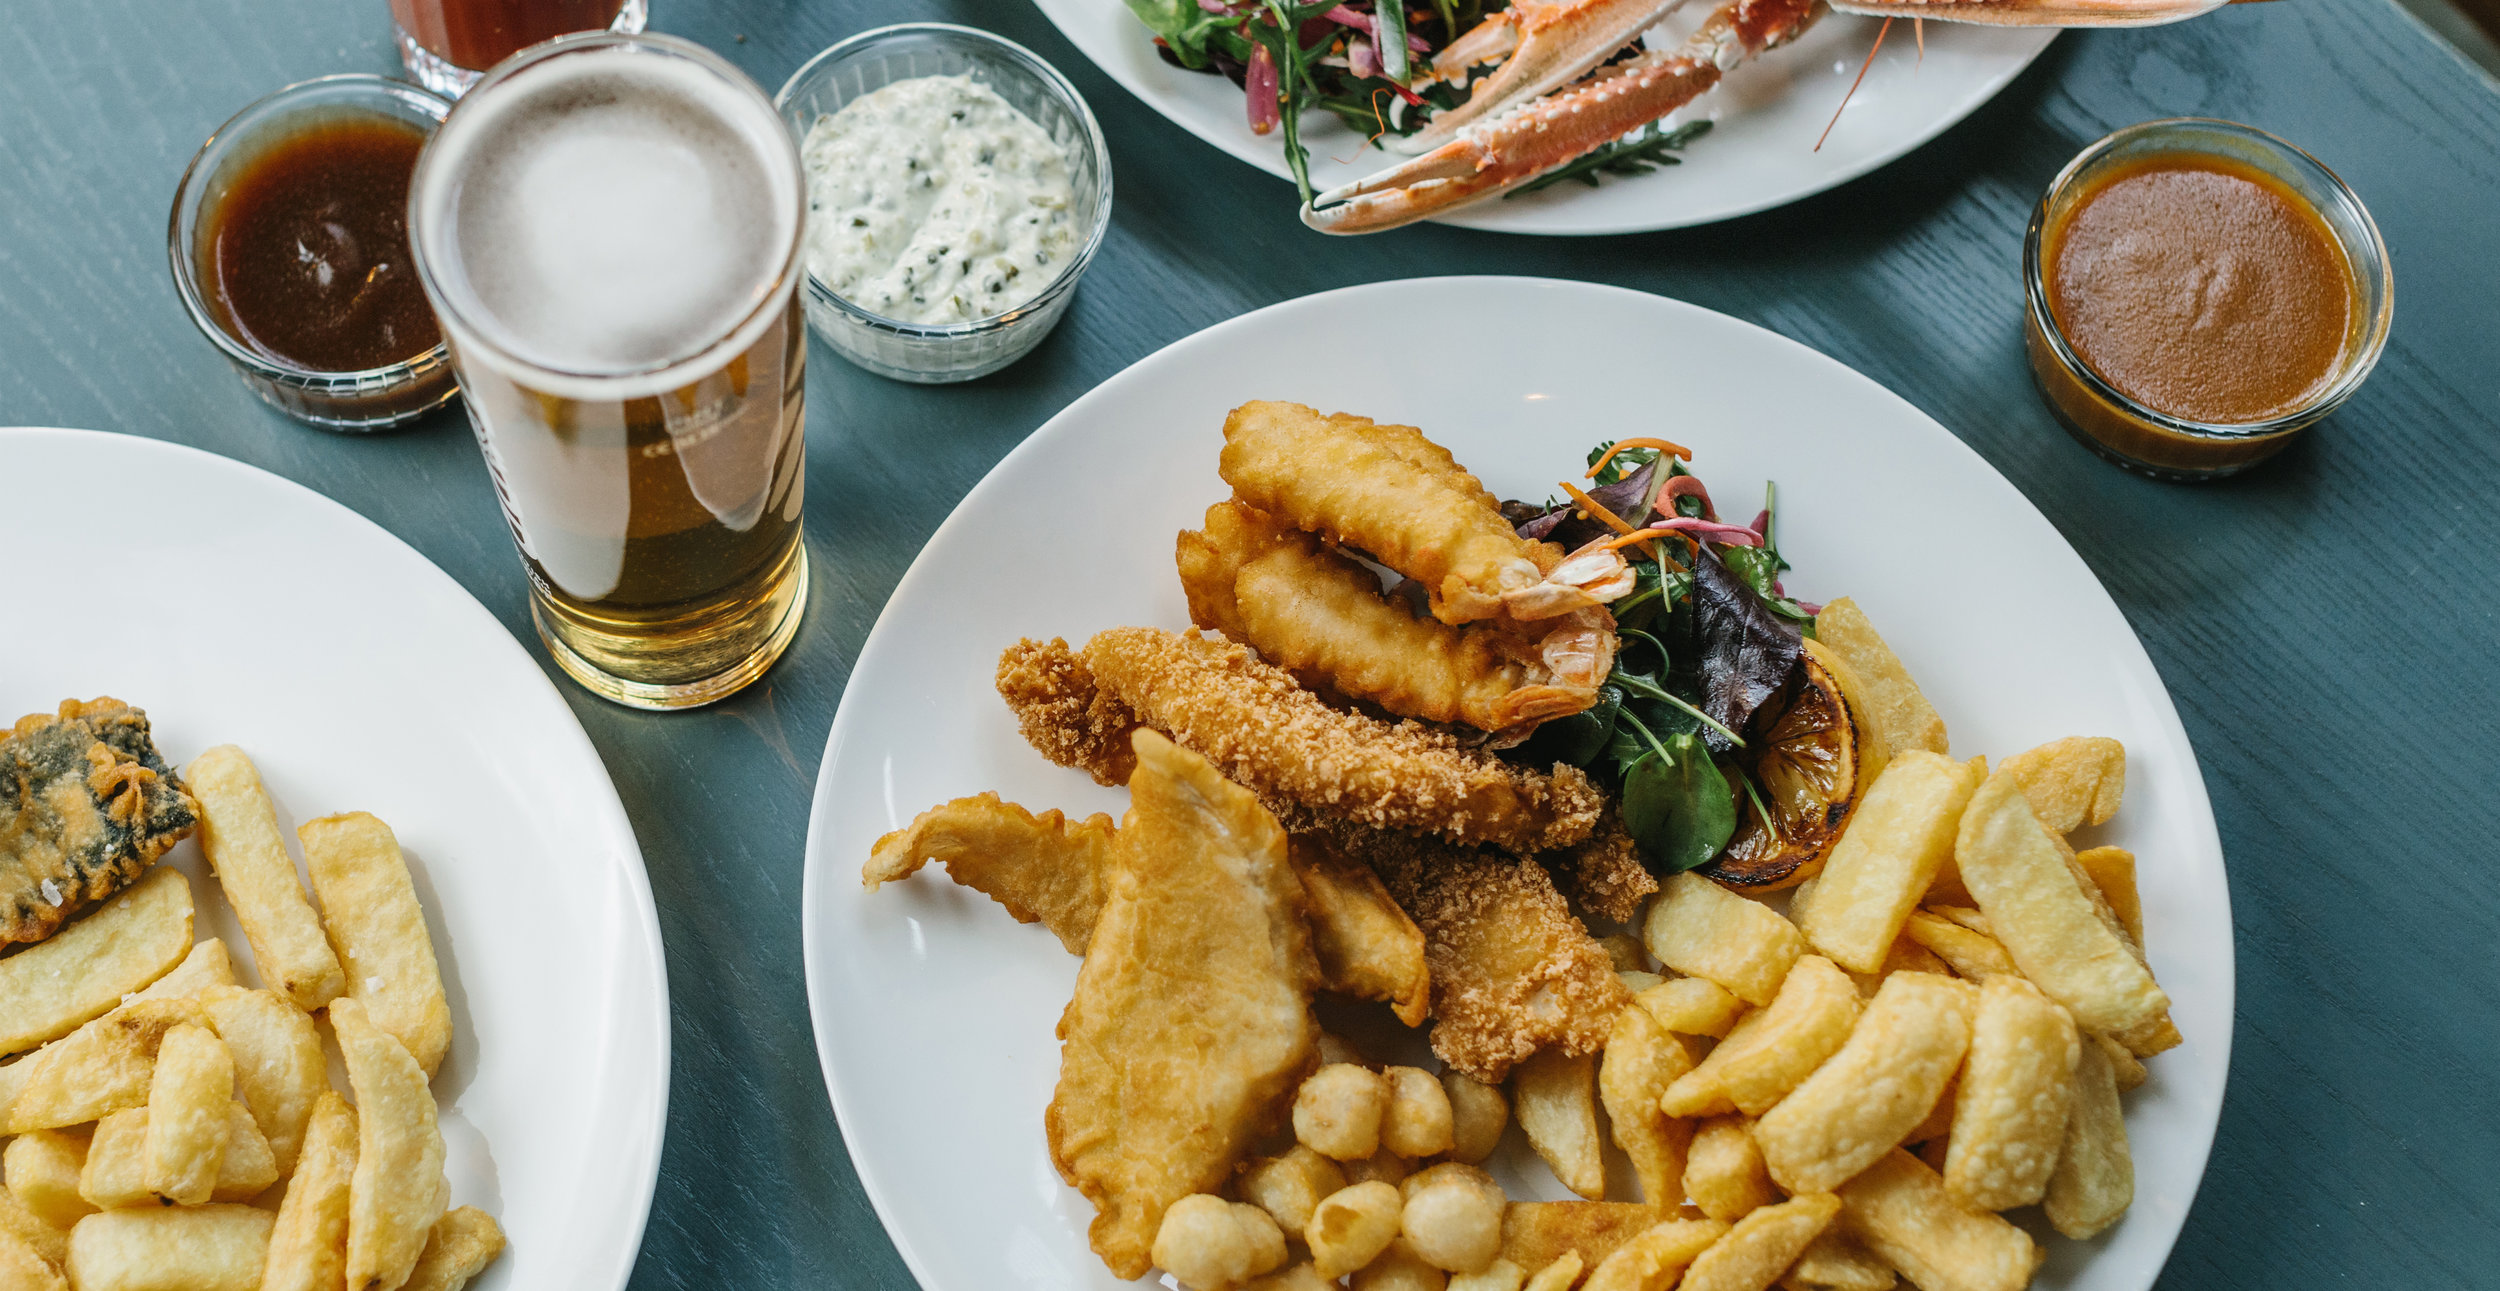 Main Menu - Real Fish & Chips to smoked haddock fishcakes, and a range of non-seafood options such as Bannerman Butcher's Burger and Mac & Cheese.